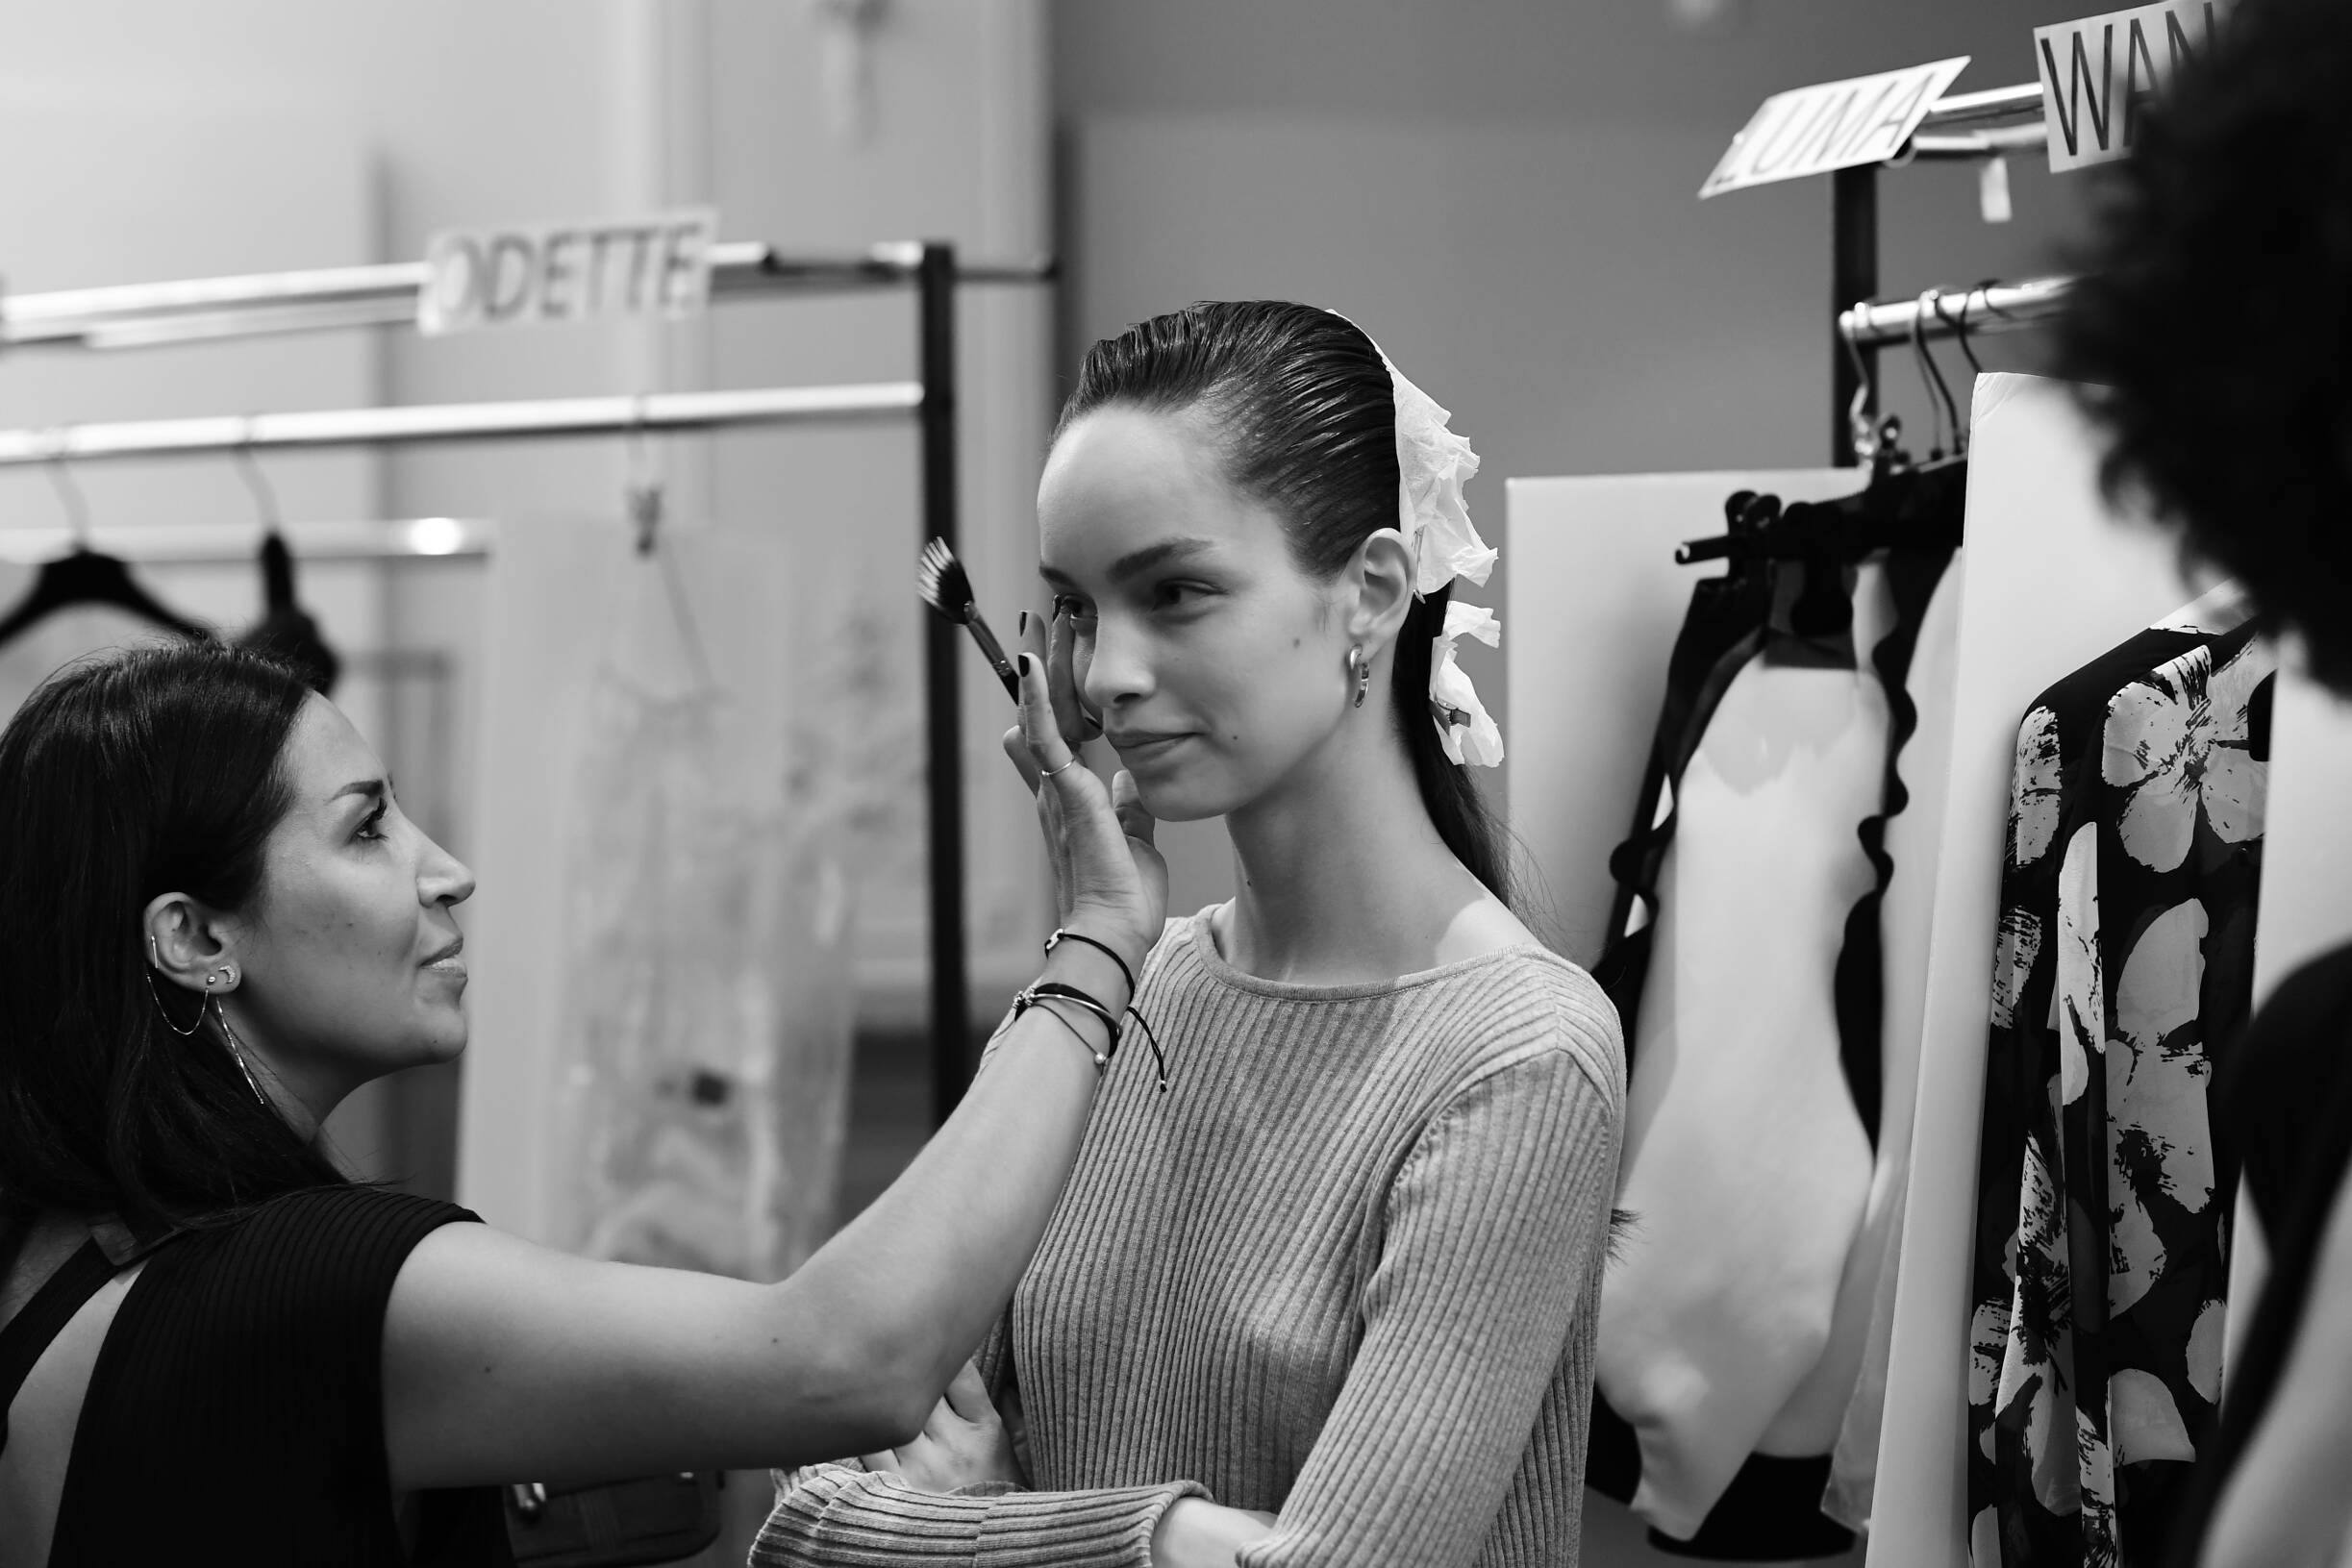 Backstage Emanuel Ungaro Fashion Model Make Up